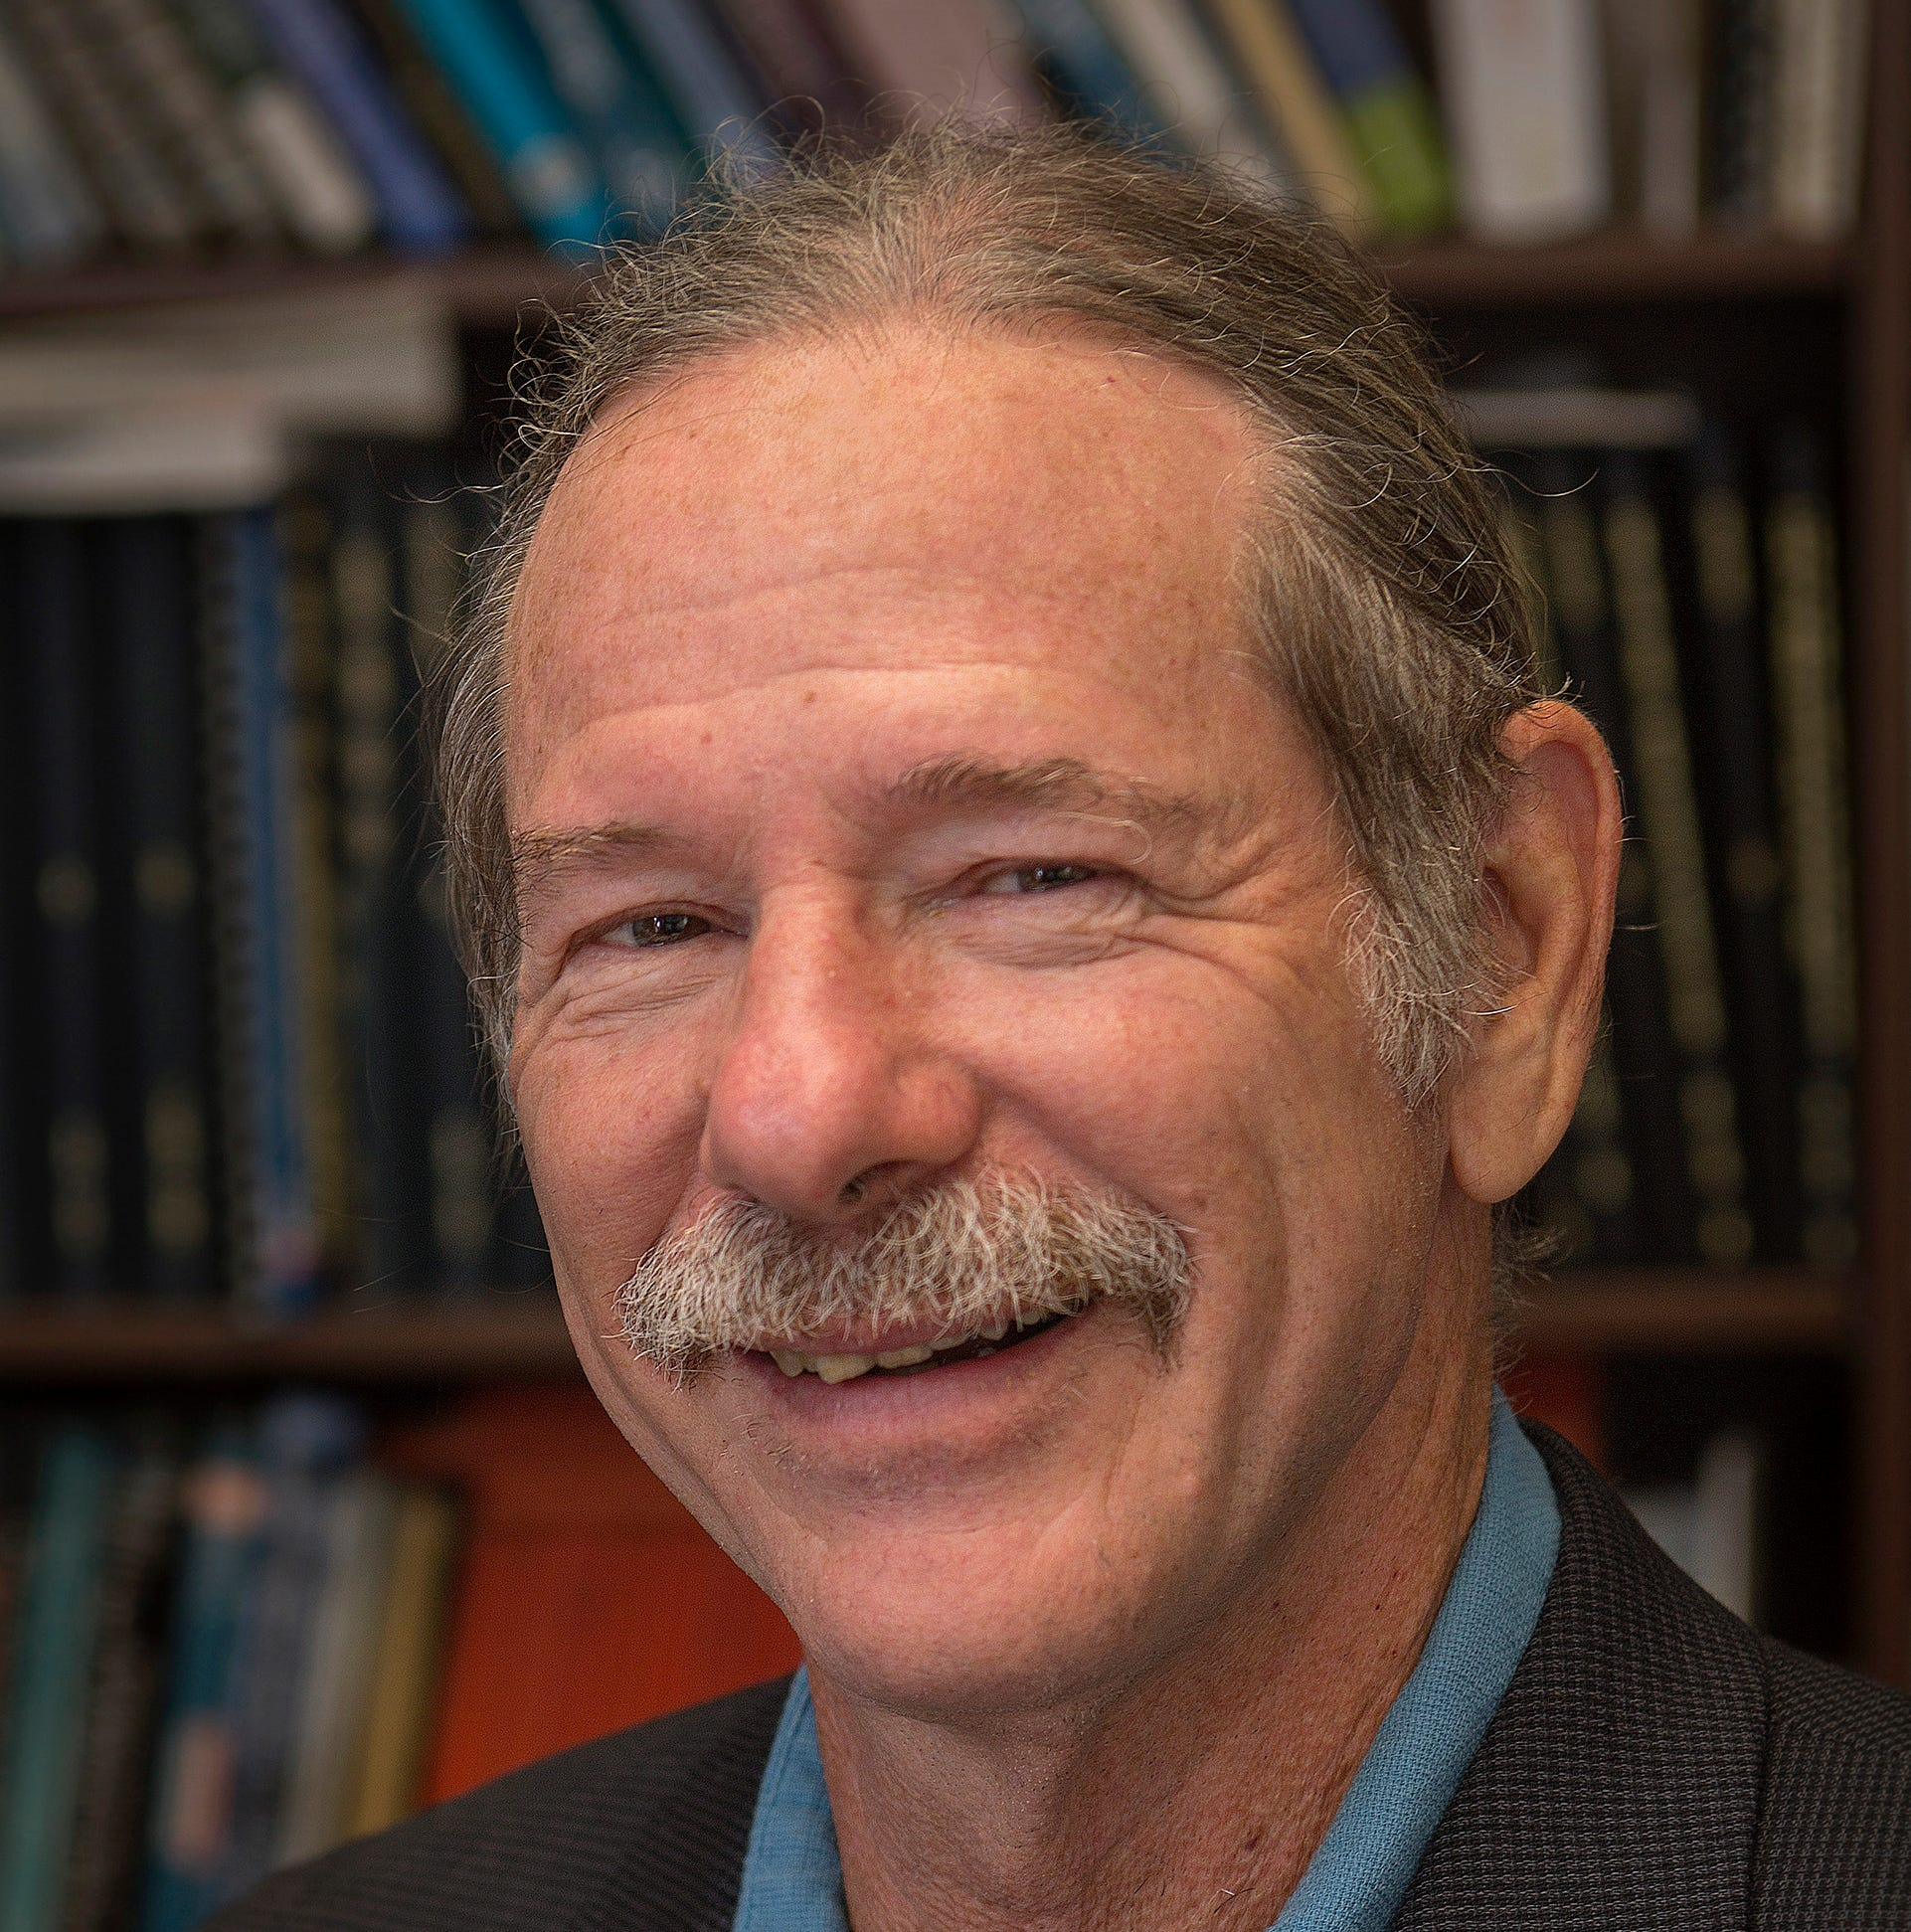 Tallahassee Scientific Society honors Jeff Chanton with Gold Medal Award